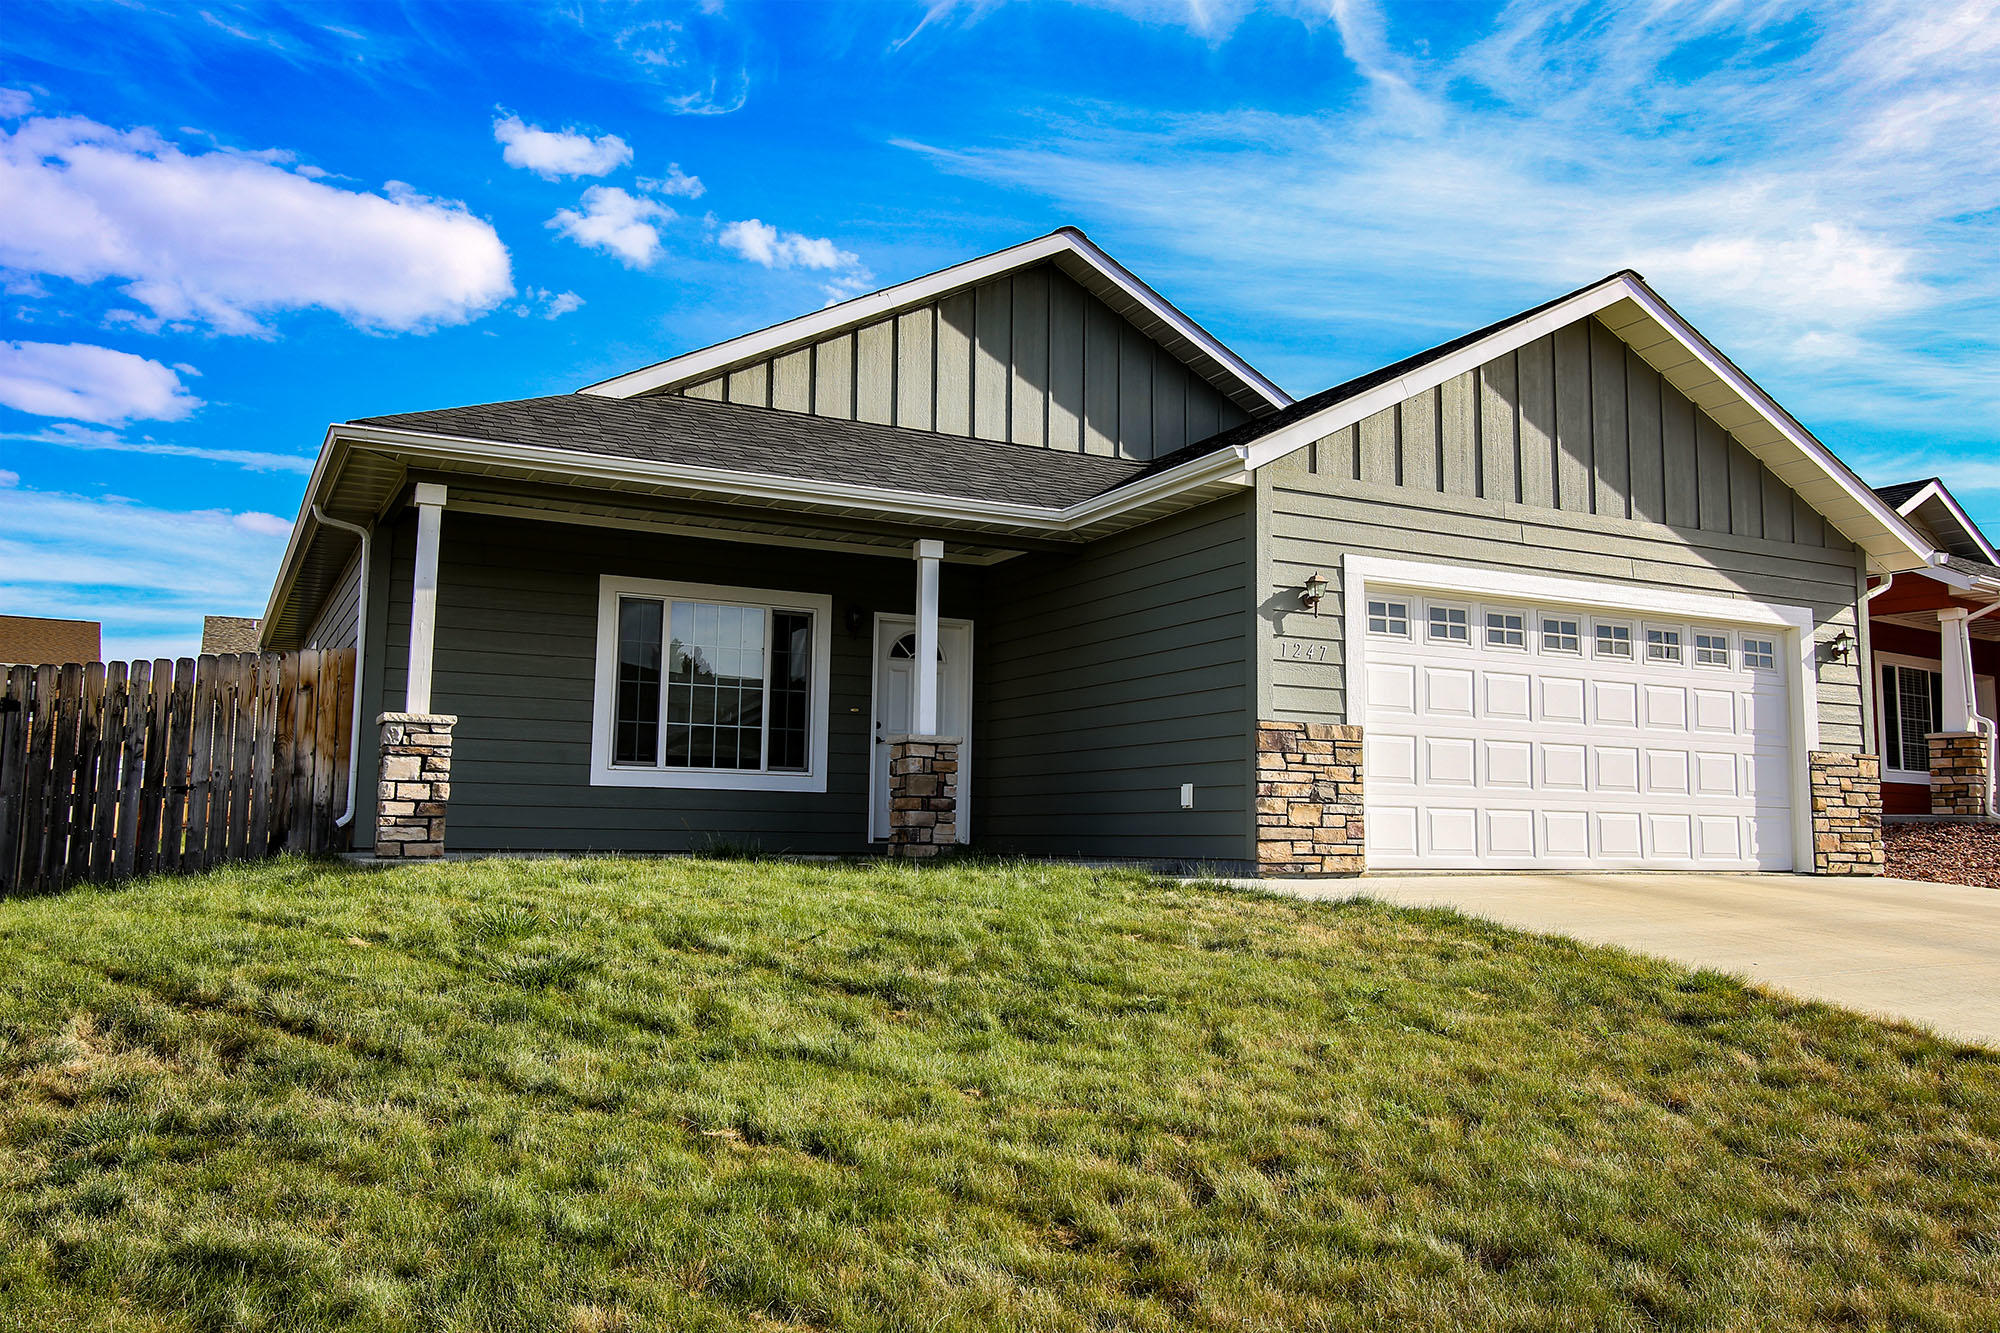 1247 Woodwind Drive, Sheridan, Wyoming 82801, 3 Bedrooms Bedrooms, ,2 BathroomsBathrooms,Residential,For Sale,Woodwind,18-1021